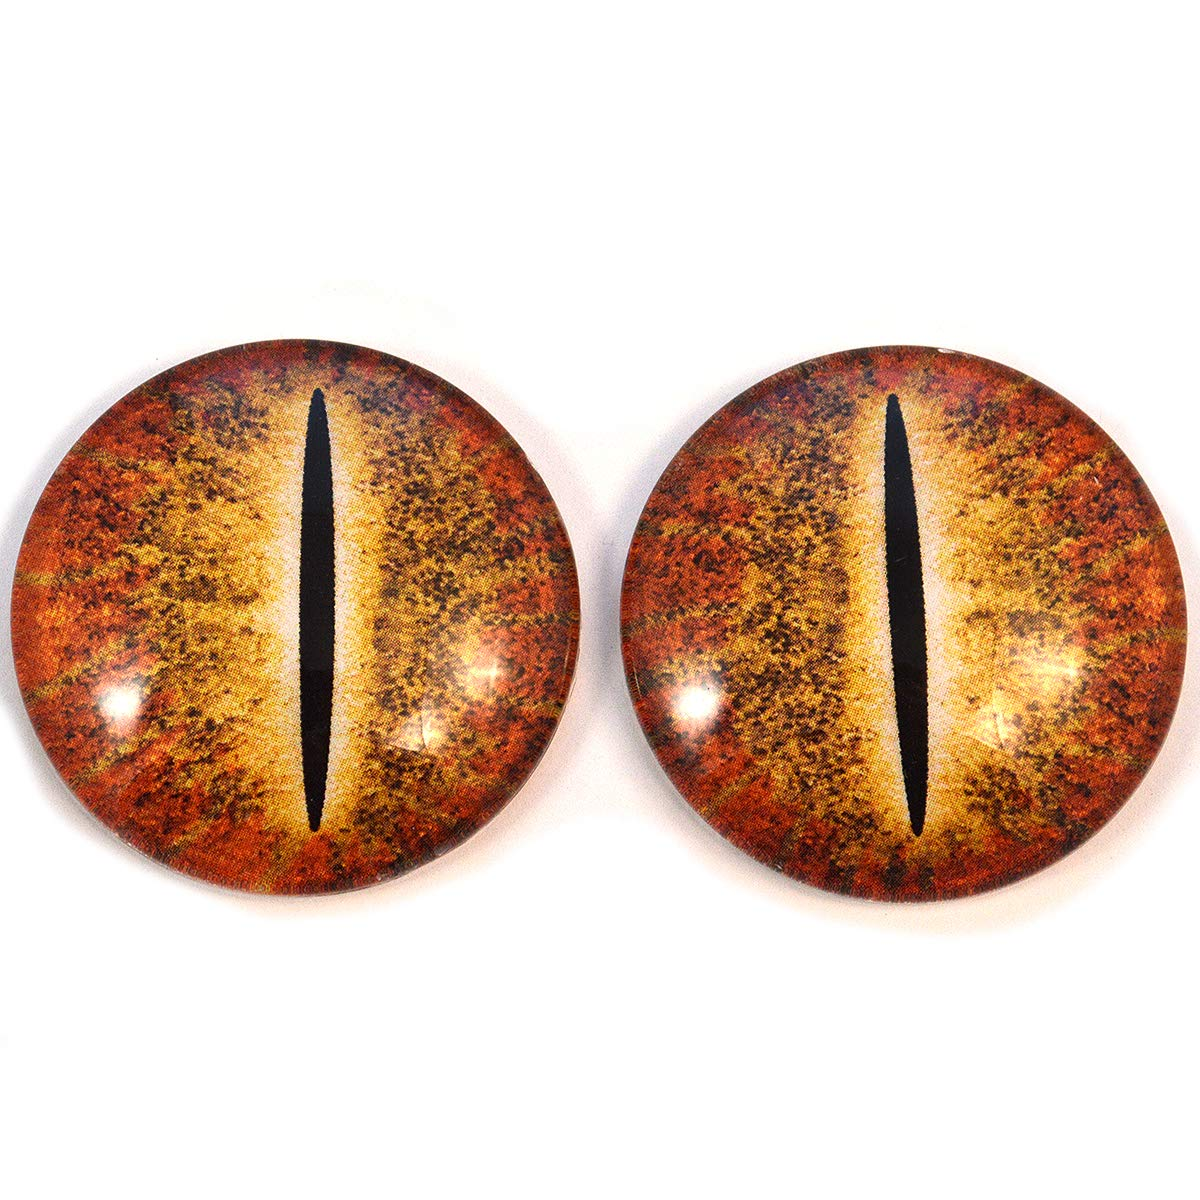 Orange Dinosaur Glass Eyes Dragon Reptile Art Dolls Taxidermy Sculptures or Jewelry Making Cabochons Crafts Matching Set of 2 (40mm)